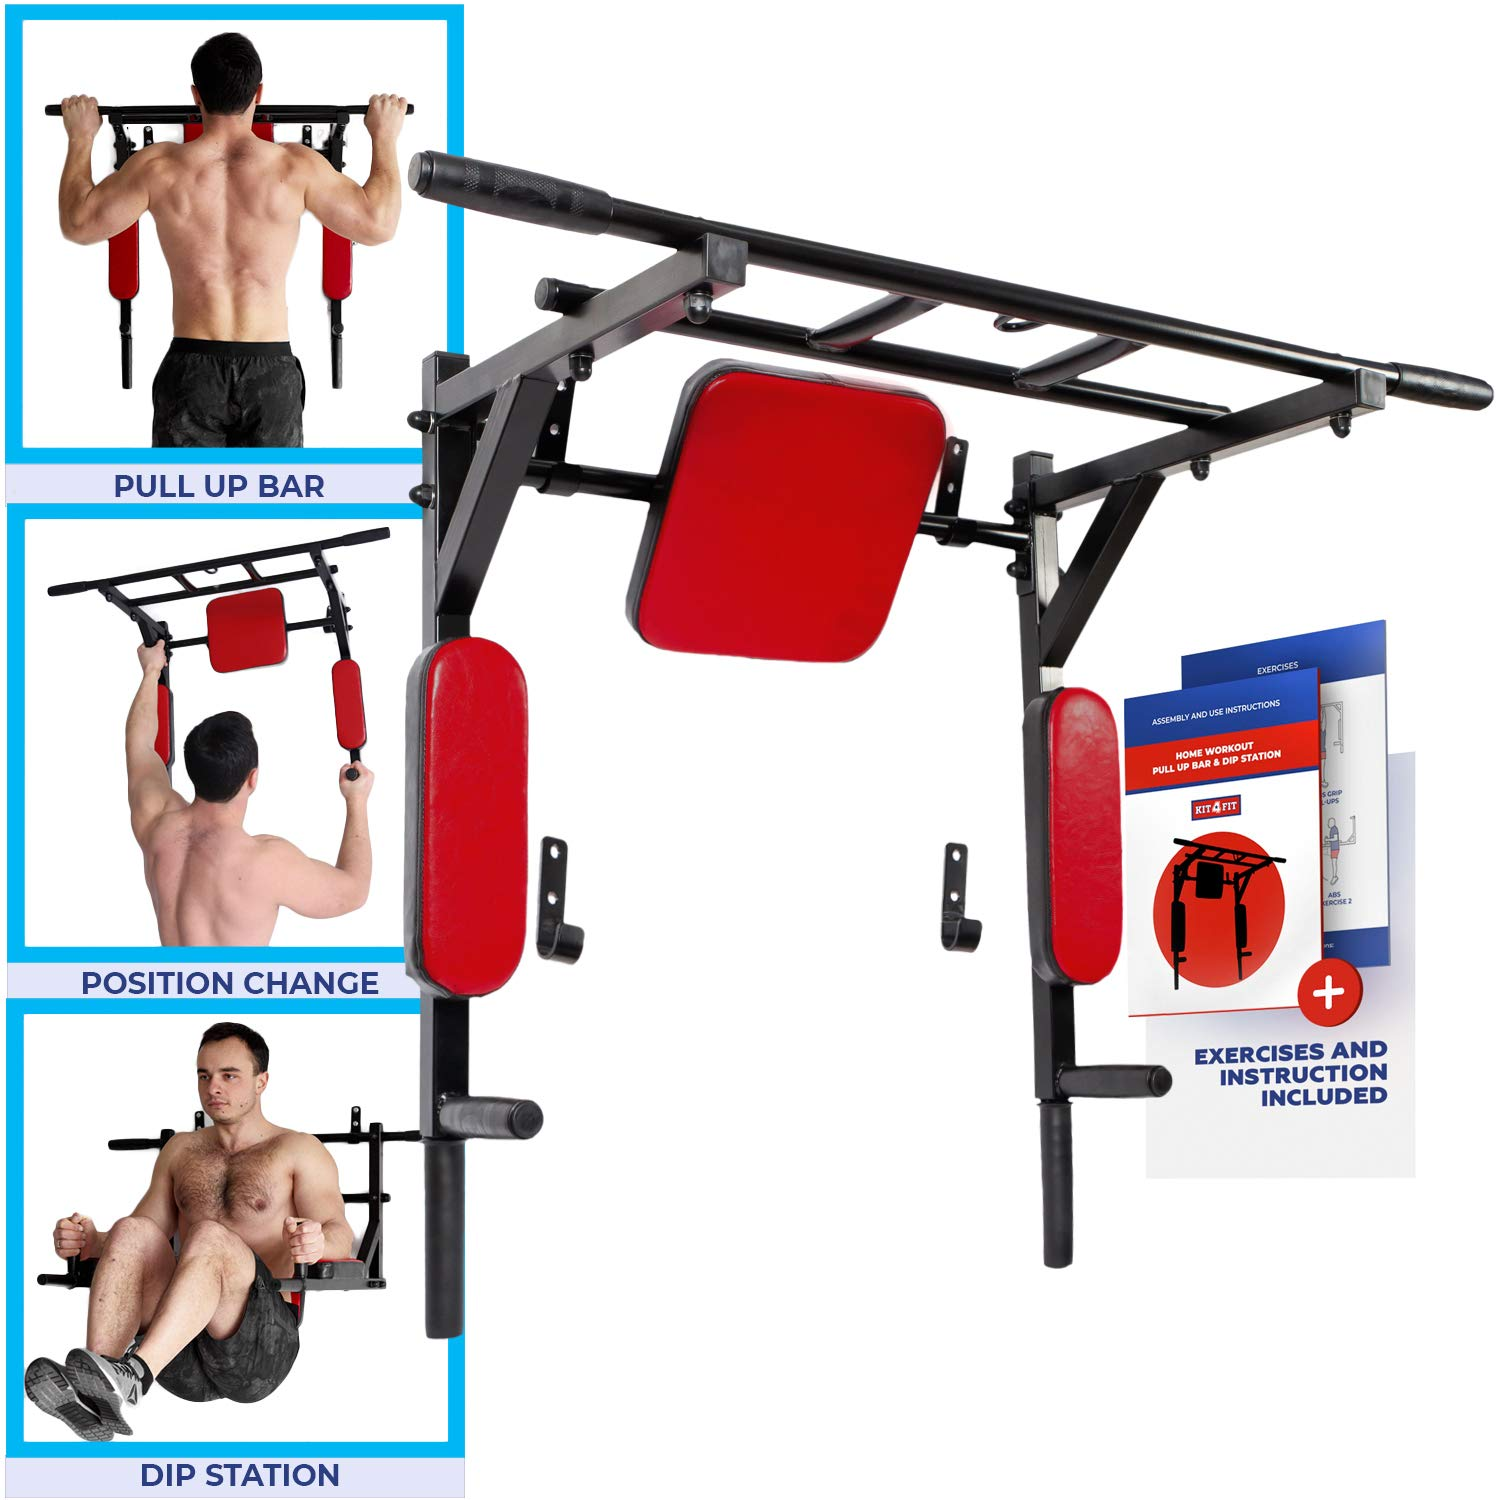 Wall Mounted Pull Up Bar and Dip Station with Vertical Knee Raise Station Indoor Home Exercise Equipment for Men Woman and Kids Great for Workout and Fitness (Red) by Kit4Fit (Image #1)